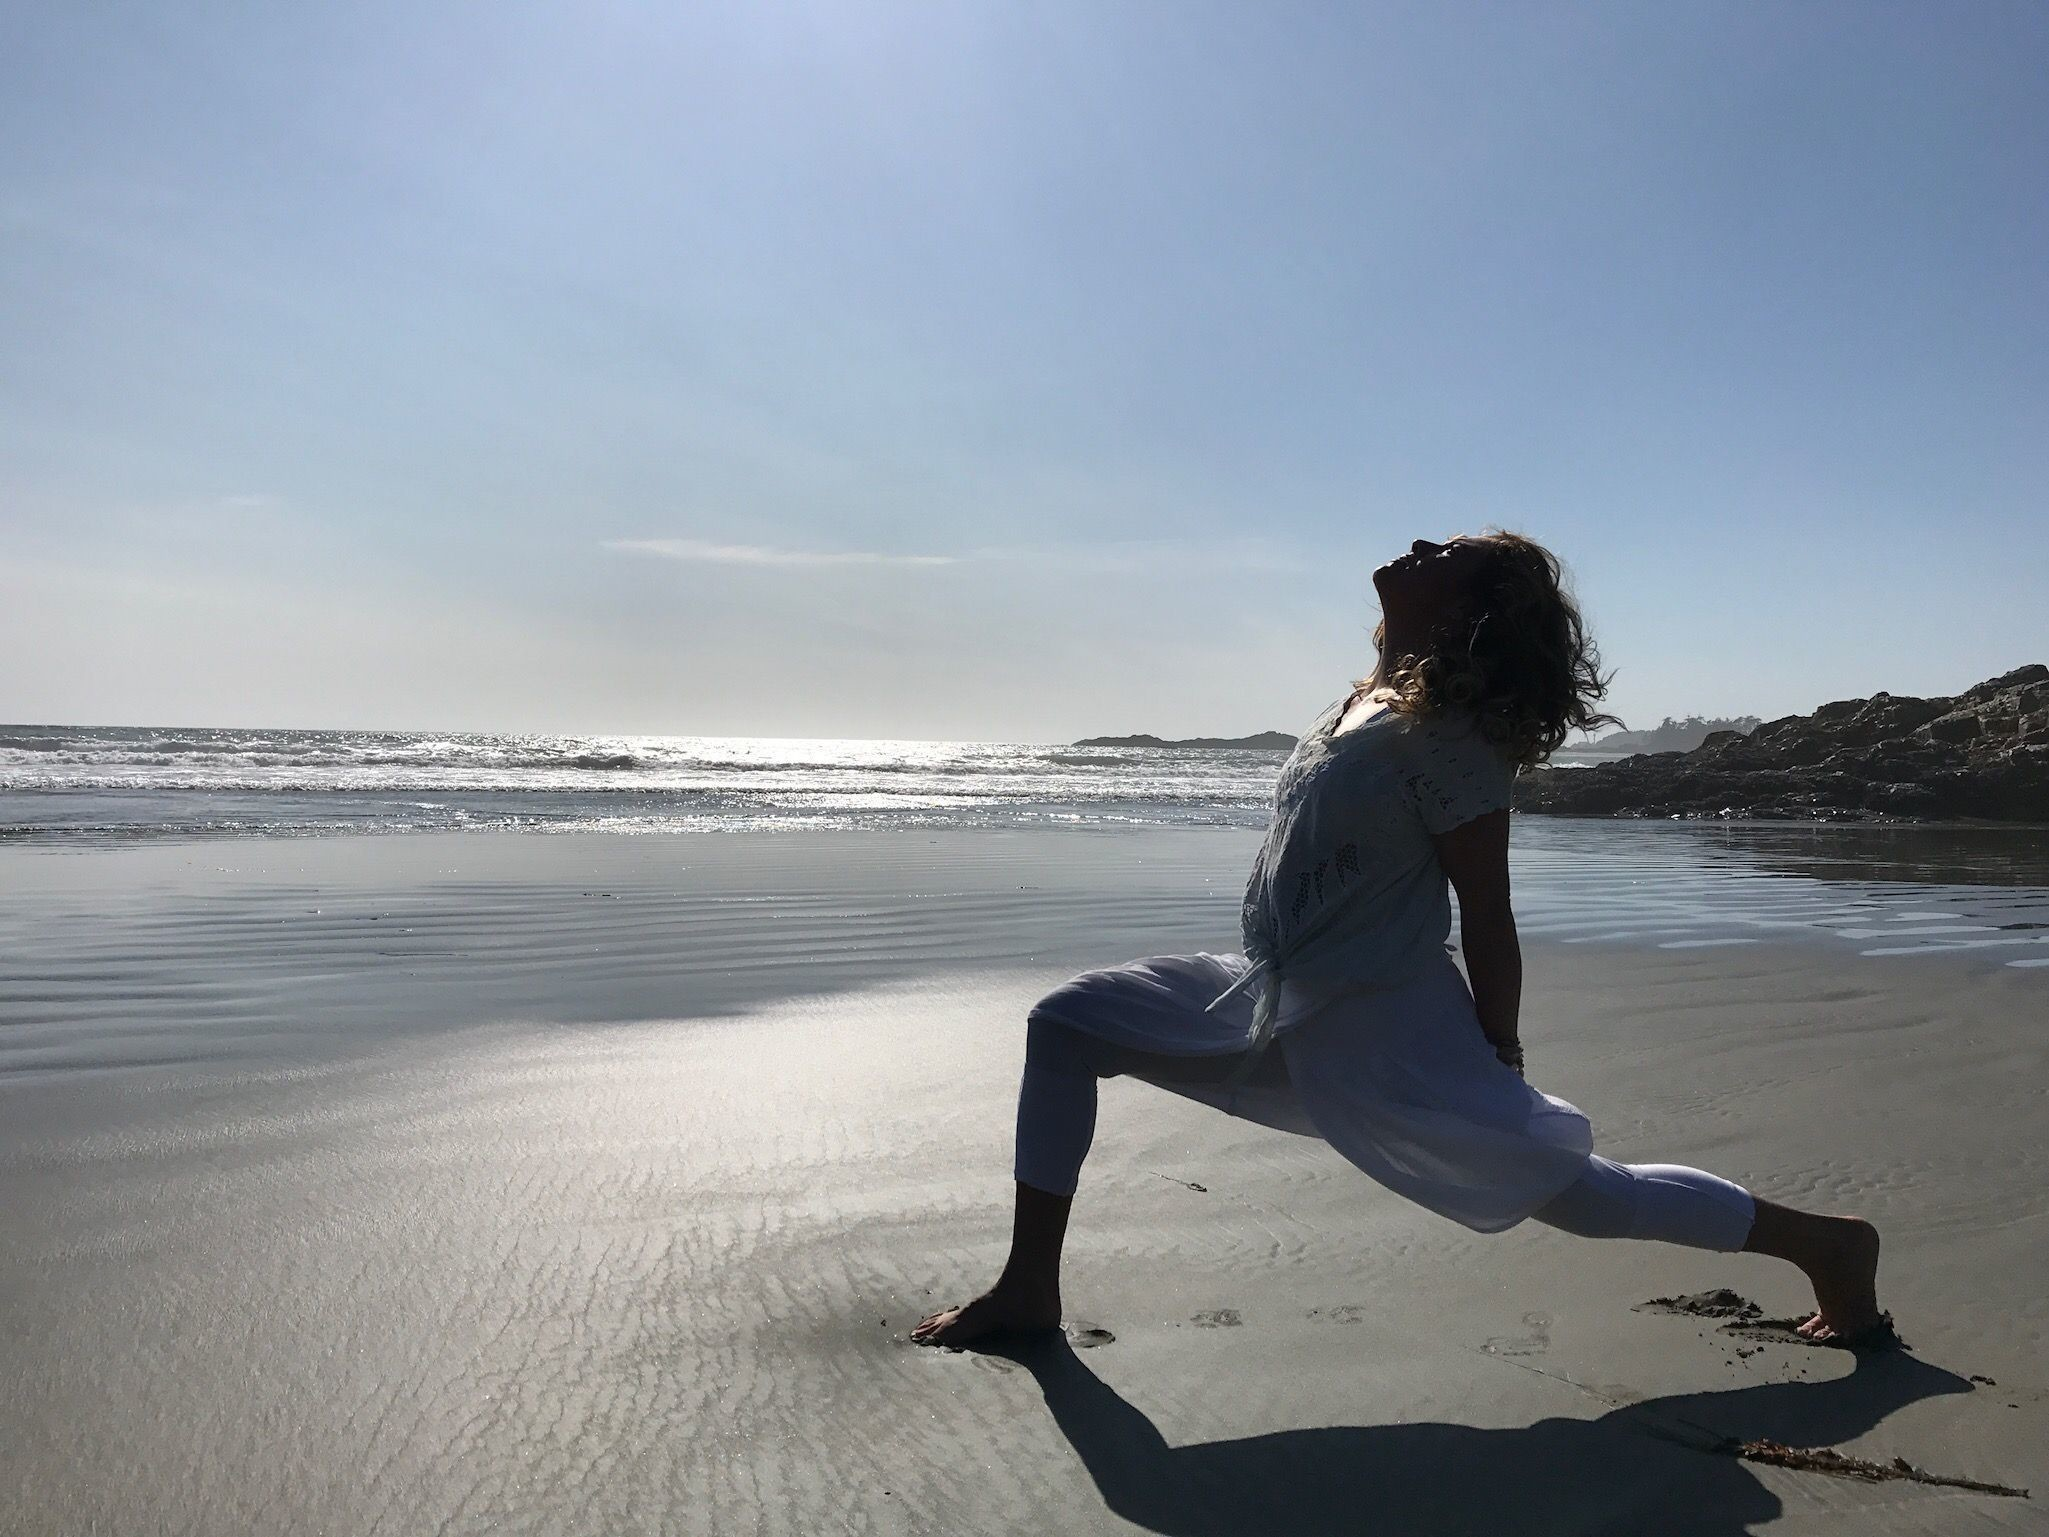 Sophie Grégoire Trudeau, wife of Canadian Prime Minister Justin Trudeau, in a yoga pose on the beach